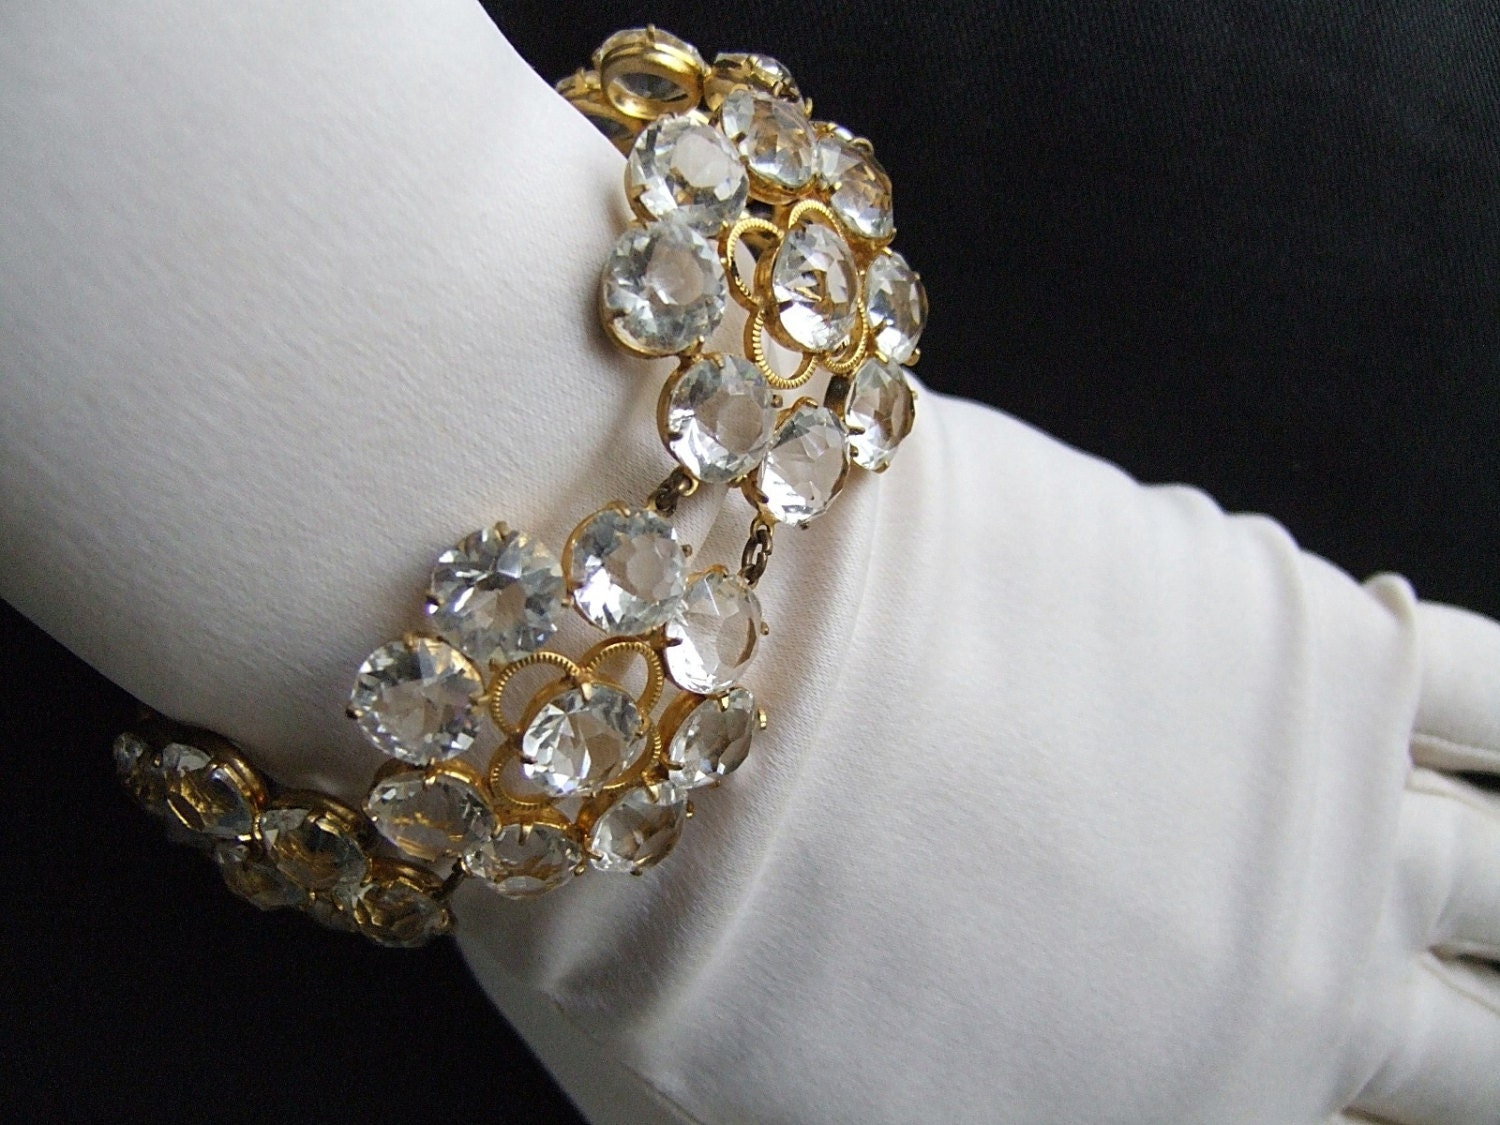 "Old Hollywood Crystal Bracelet Vintage 40's Crystal Flower Bracelet Sparkling Clear Open Back Prong Set Crystals 1"" Flowers Statement Piece - materialmemorieslane"